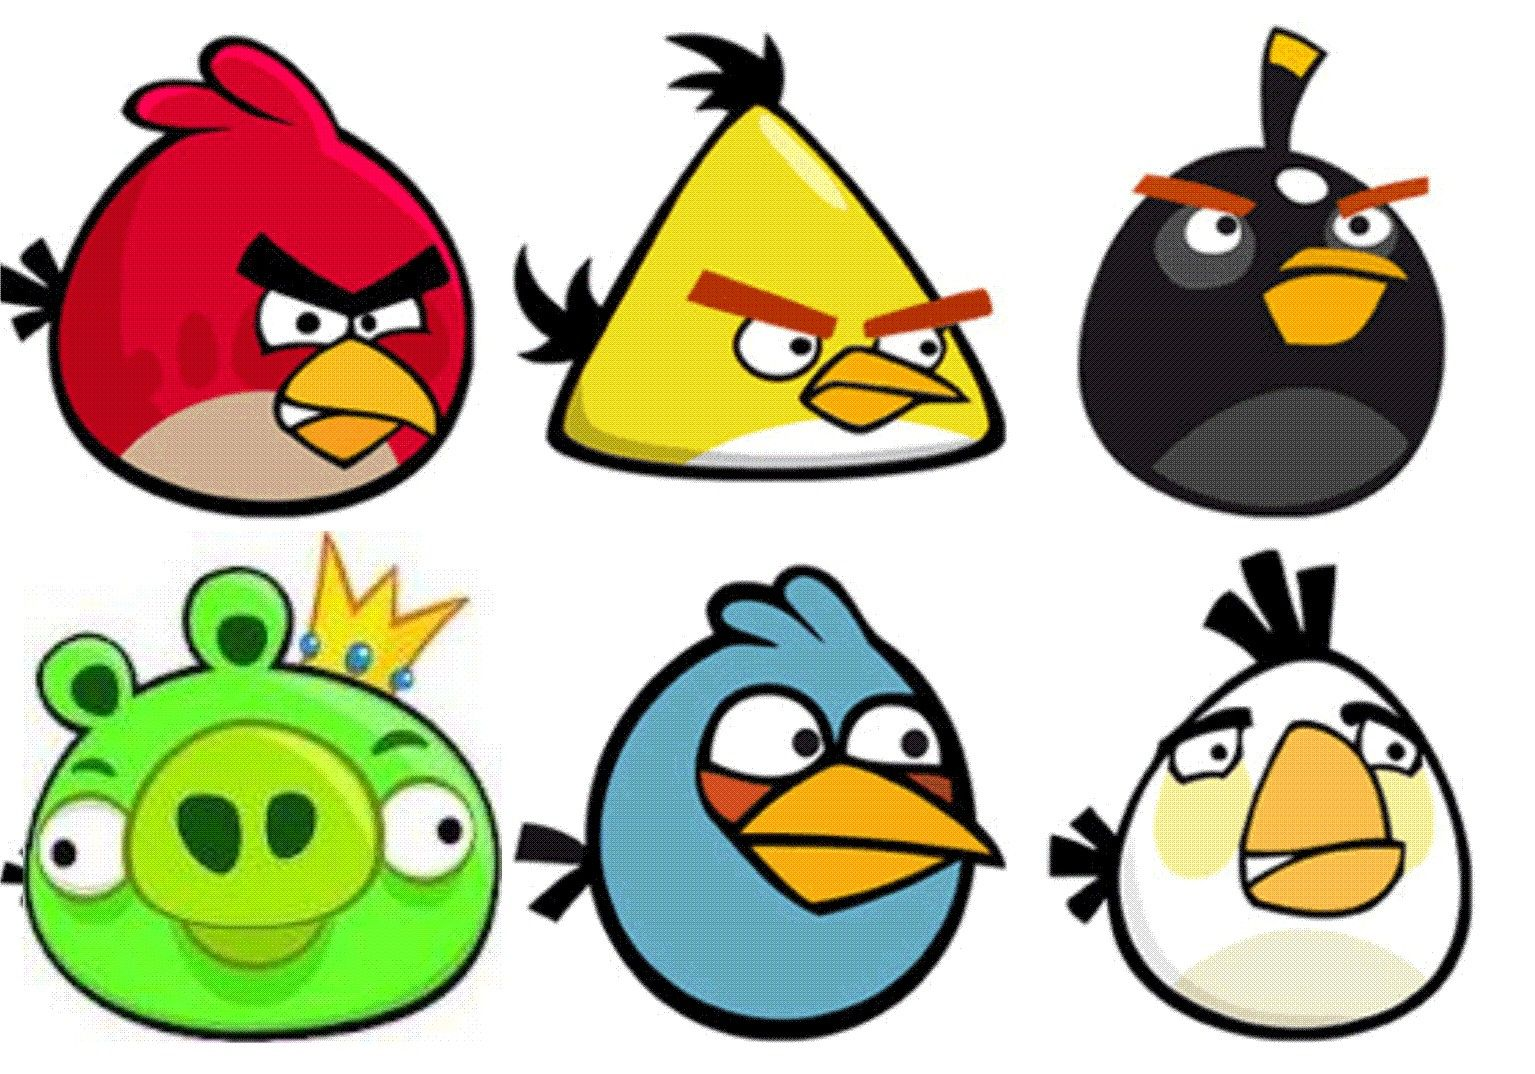 Angry Birds Wallpaper 1920 1080 Angry Bird Backgrounds 32 Wallpapers Adorable Wallpapers Angry Bird Pictures Angry Birds Characters Angry Birds